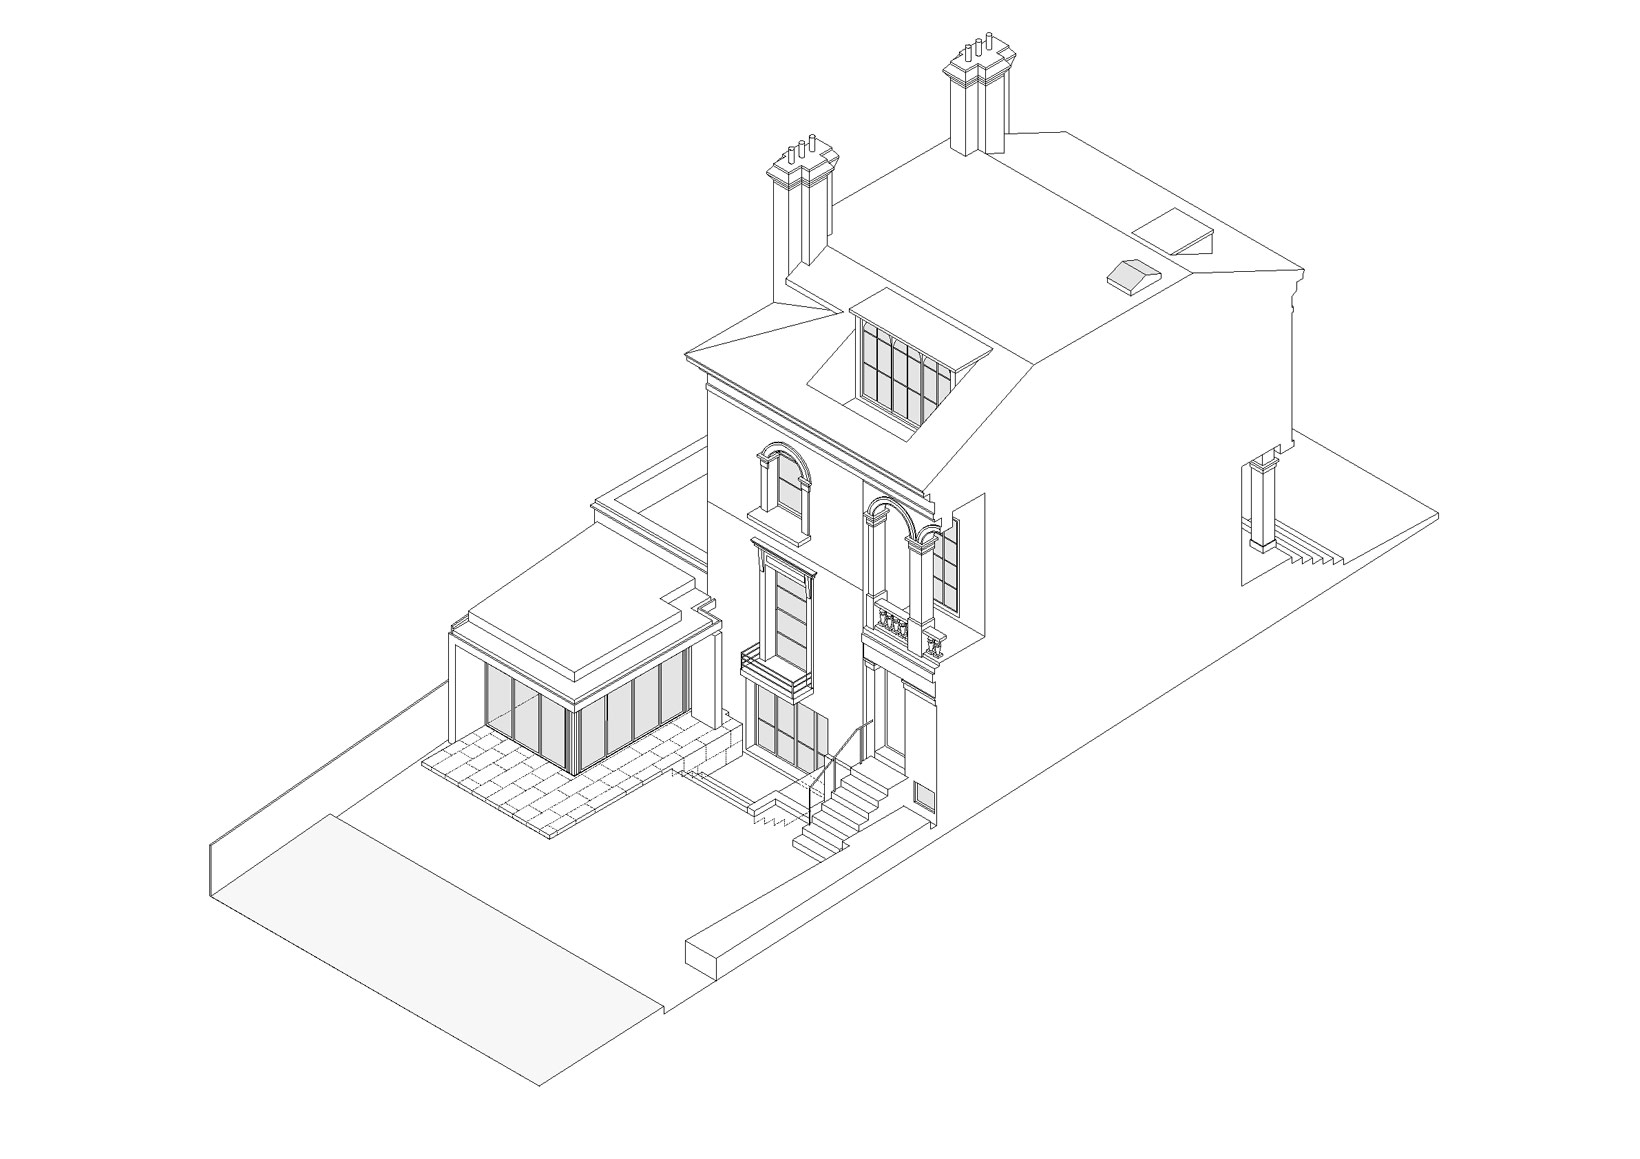 Grade 2 listed villa in Islington, drawings